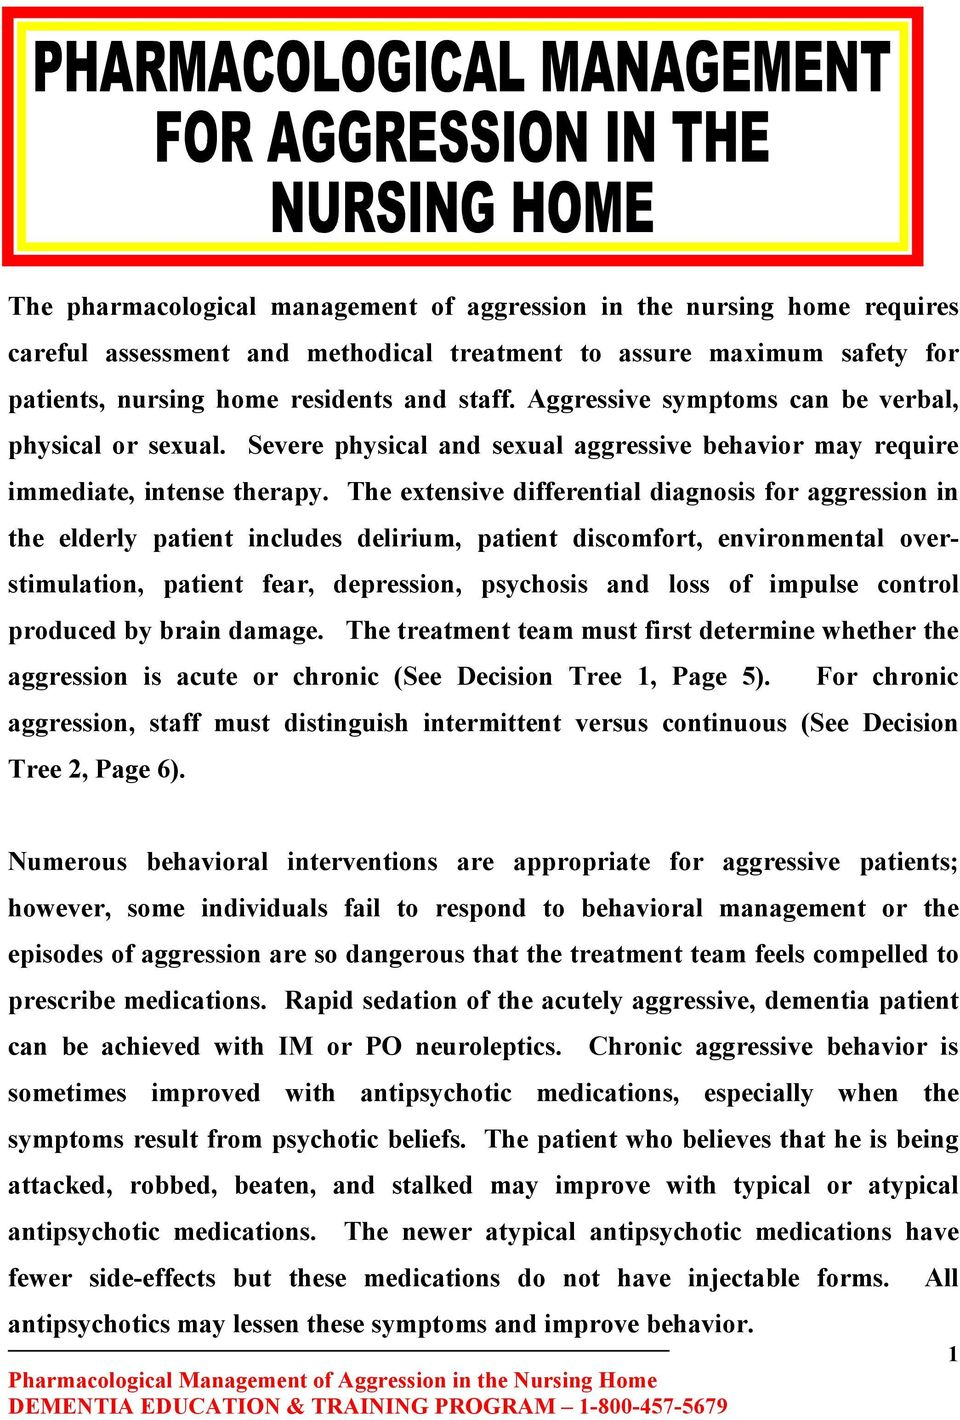 The extensive differential diagnosis for aggression in the elderly patient includes delirium, patient discomfort, environmental overstimulation, patient fear, depression, psychosis and loss of